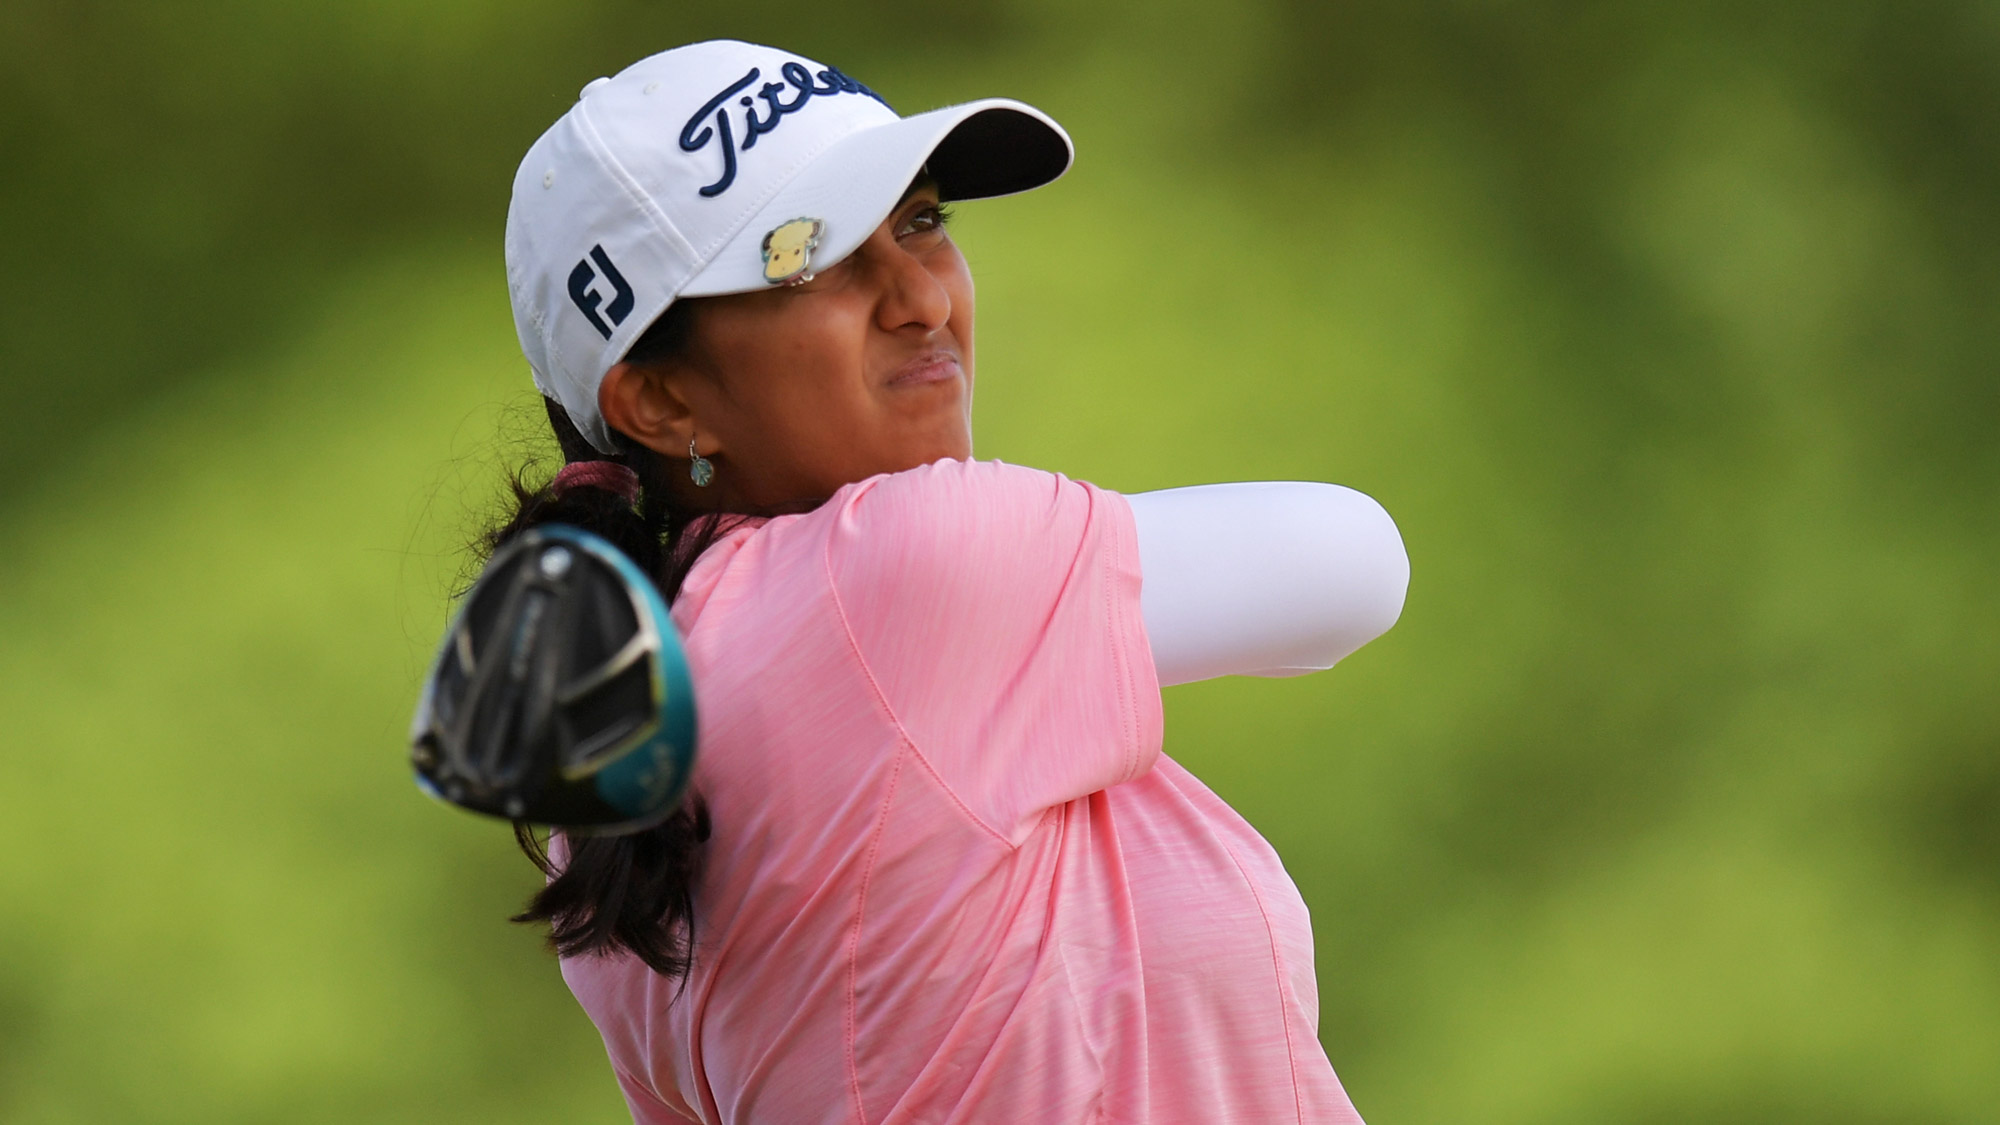 Aditi Ashok Stares Down the Fairway in Round One